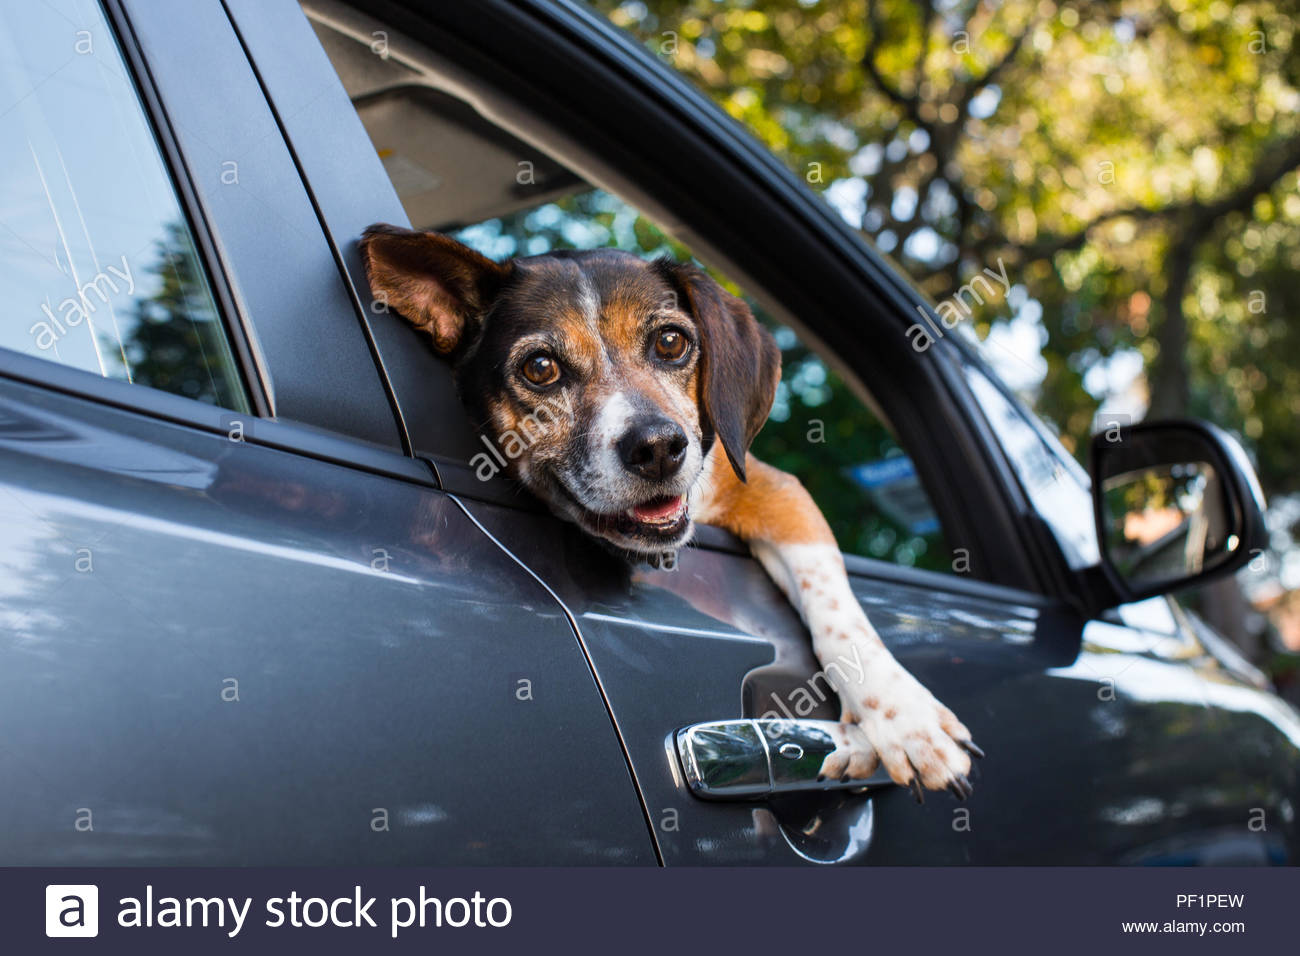 Beagle with silly goofy smile resting head and leg outside of car window - Stock Image